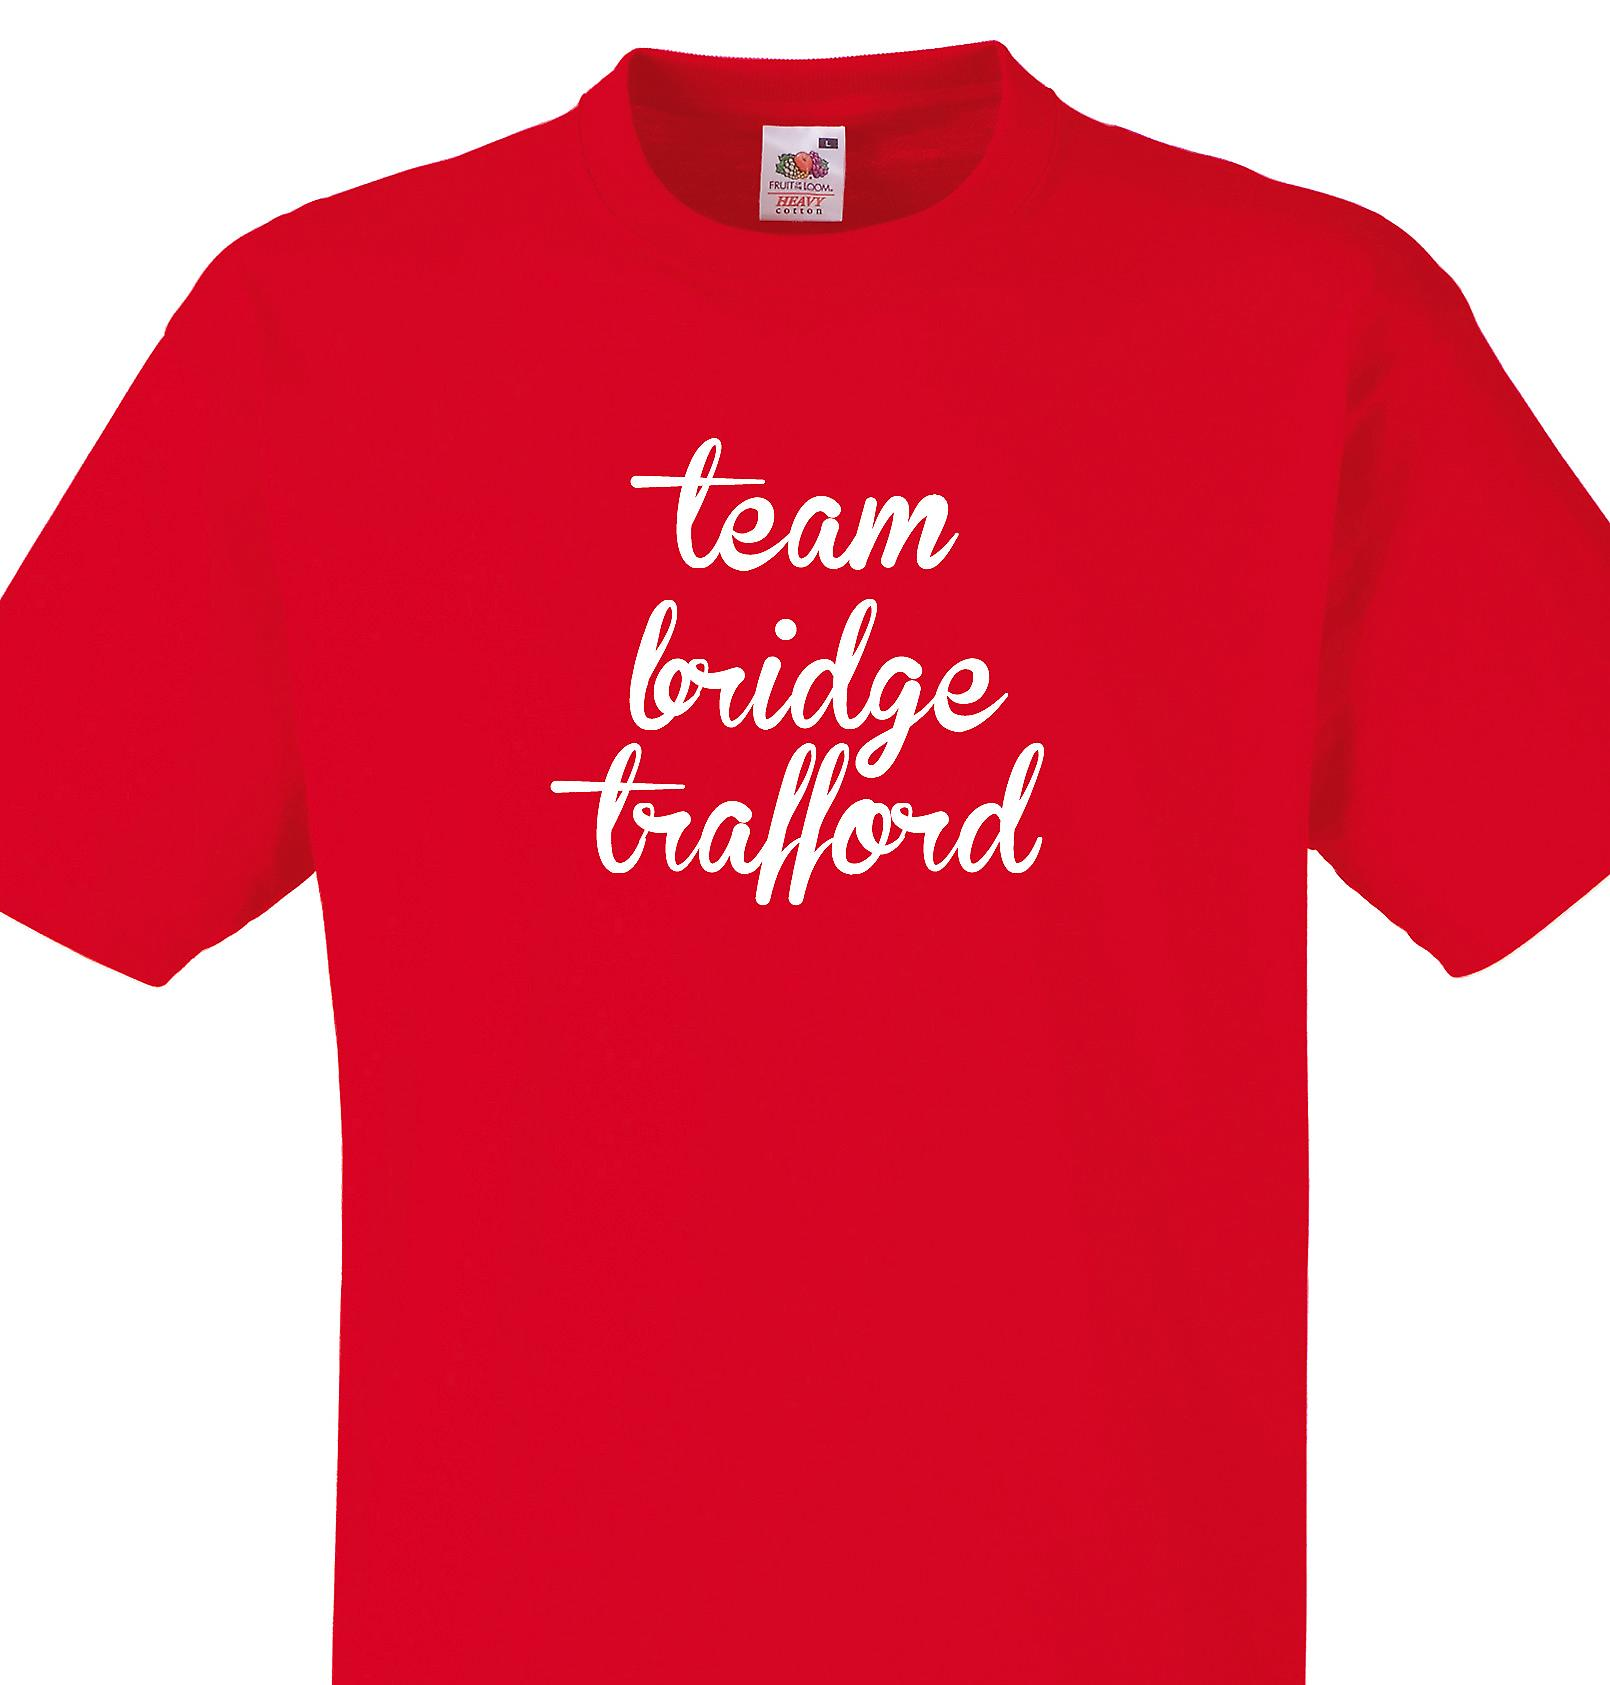 Team Bridge trafford Red T shirt